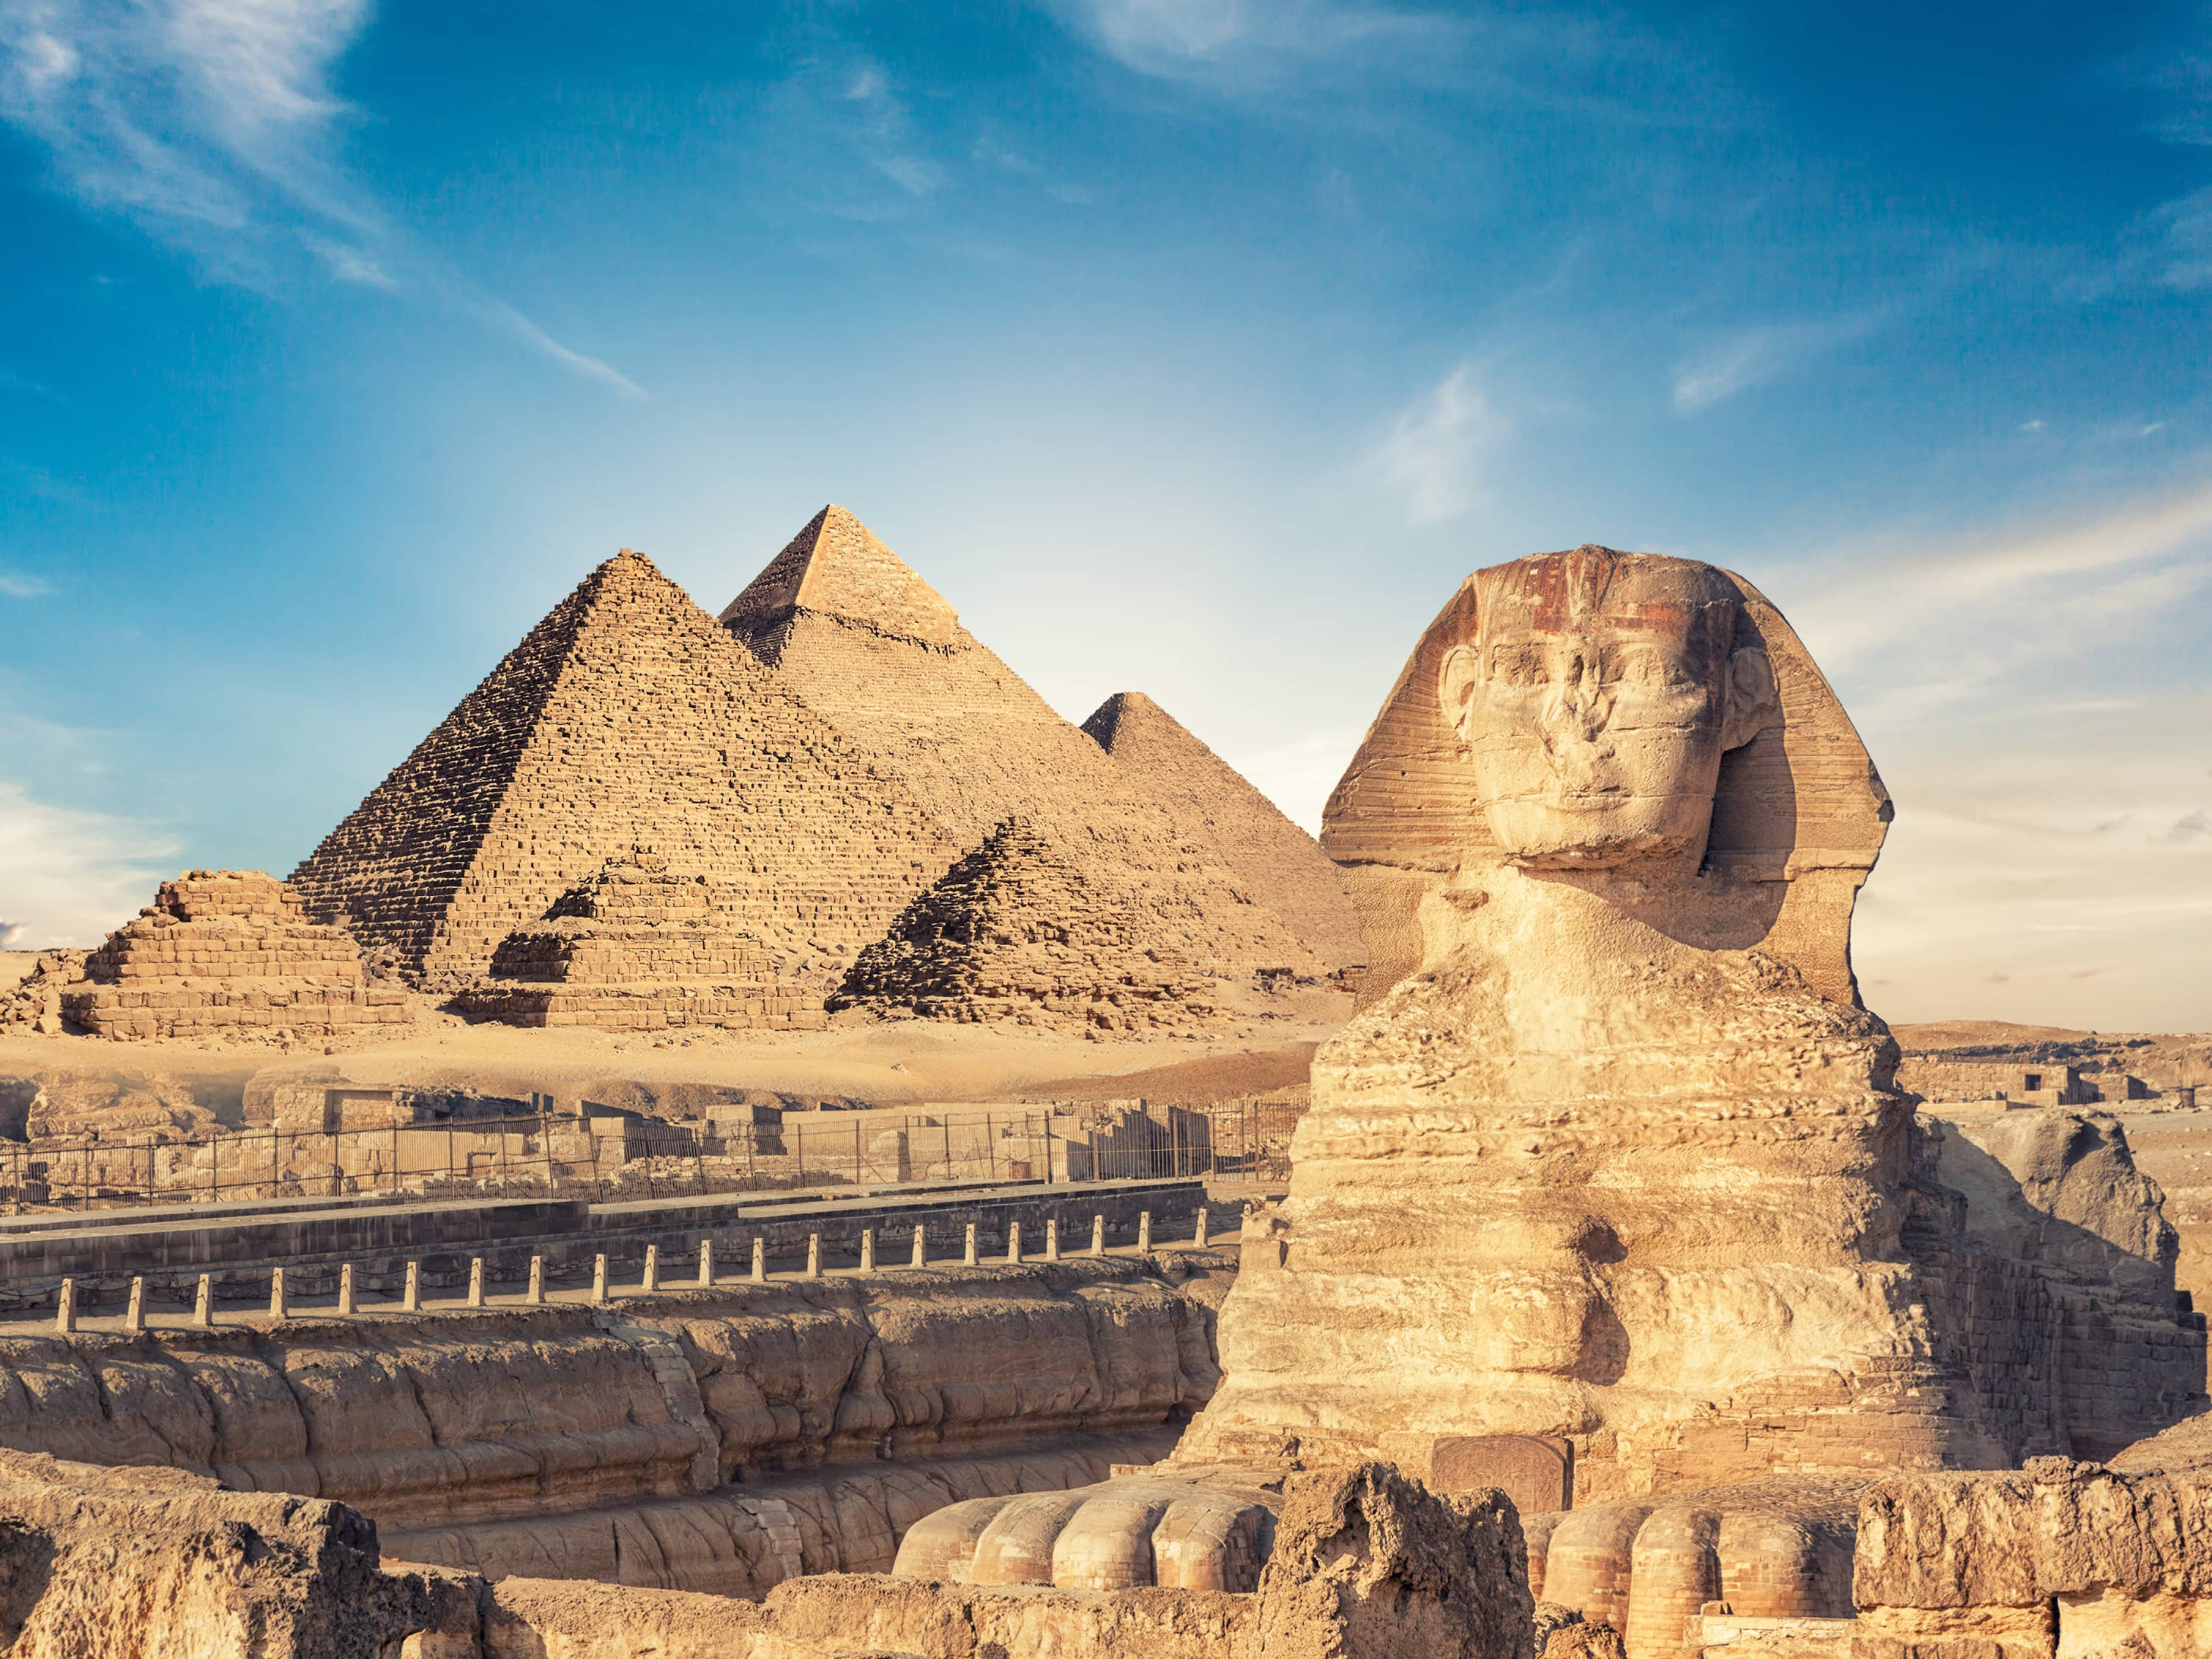 Visit the Iconic Pyramids of Giza on a Day Trip